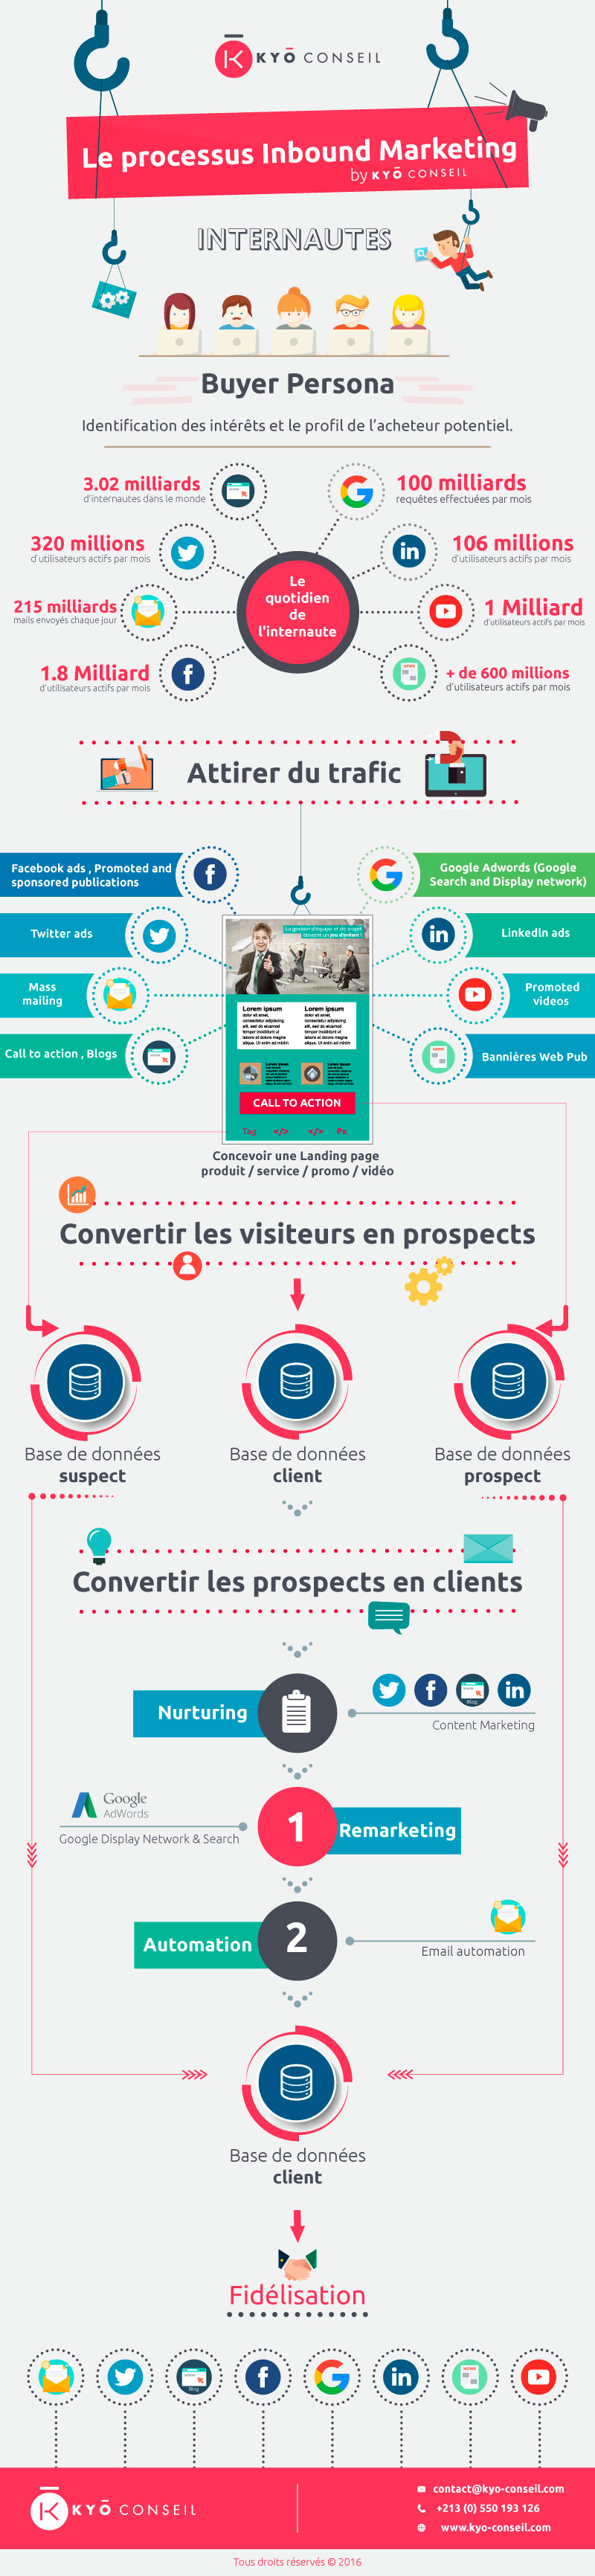 infographie inbound marketing by kyo conseil